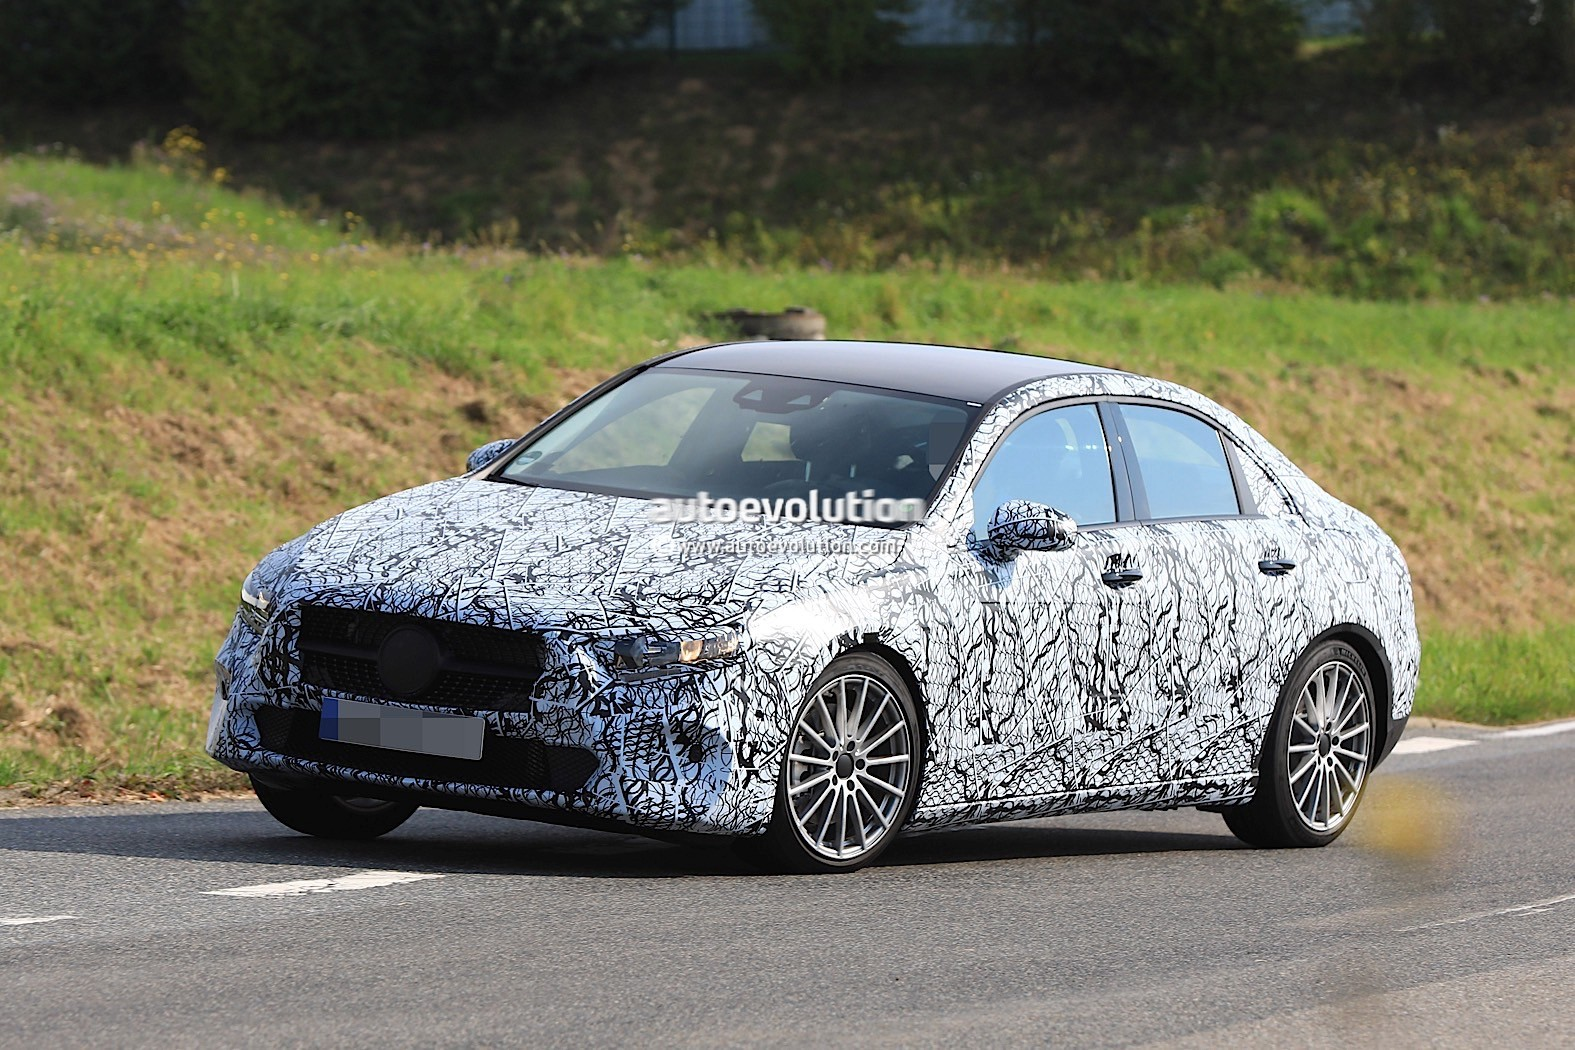 spyshots 2019 mercedes benz a class sedan first look on german roads autoevolution. Black Bedroom Furniture Sets. Home Design Ideas